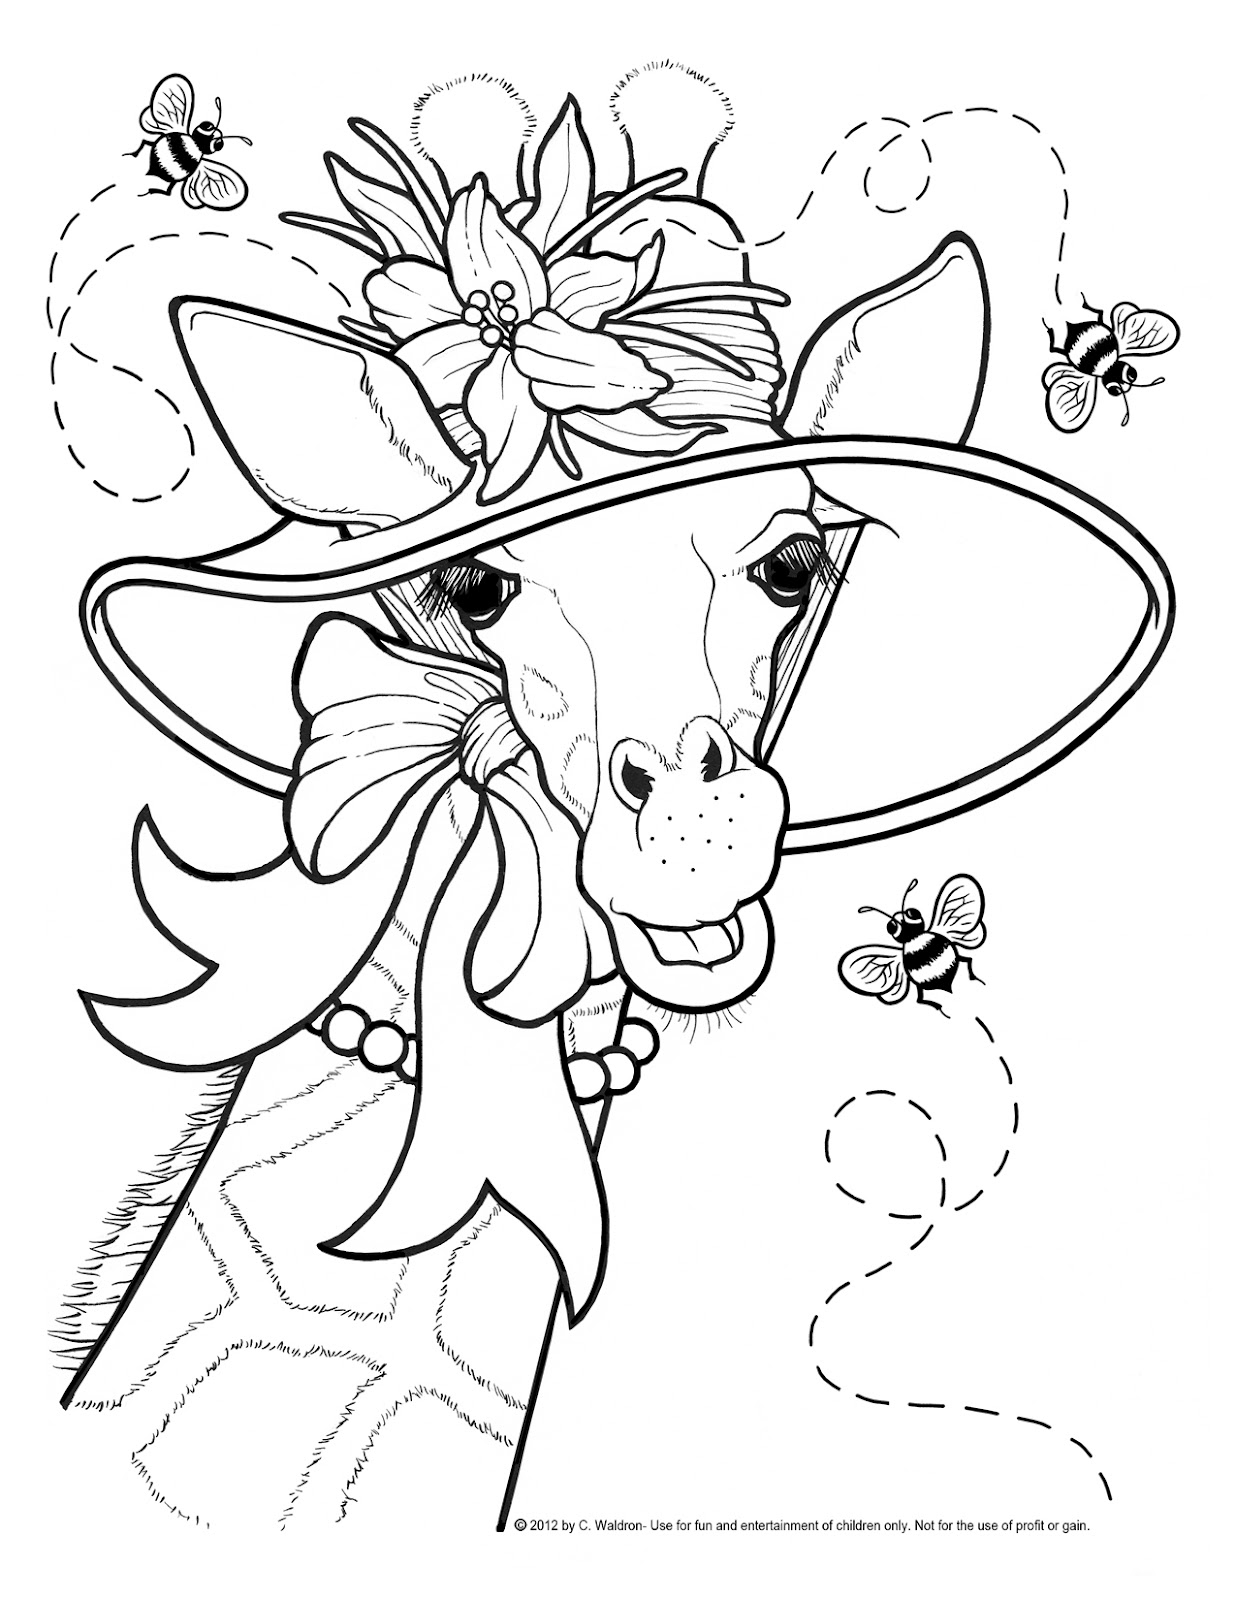 Landscape coloring pages to print - You May Need To Rotate The Paper From Portrait To Landscape Depending On The Page You Are Printing Click Print 10 You Should Now Have A Coloring Page To